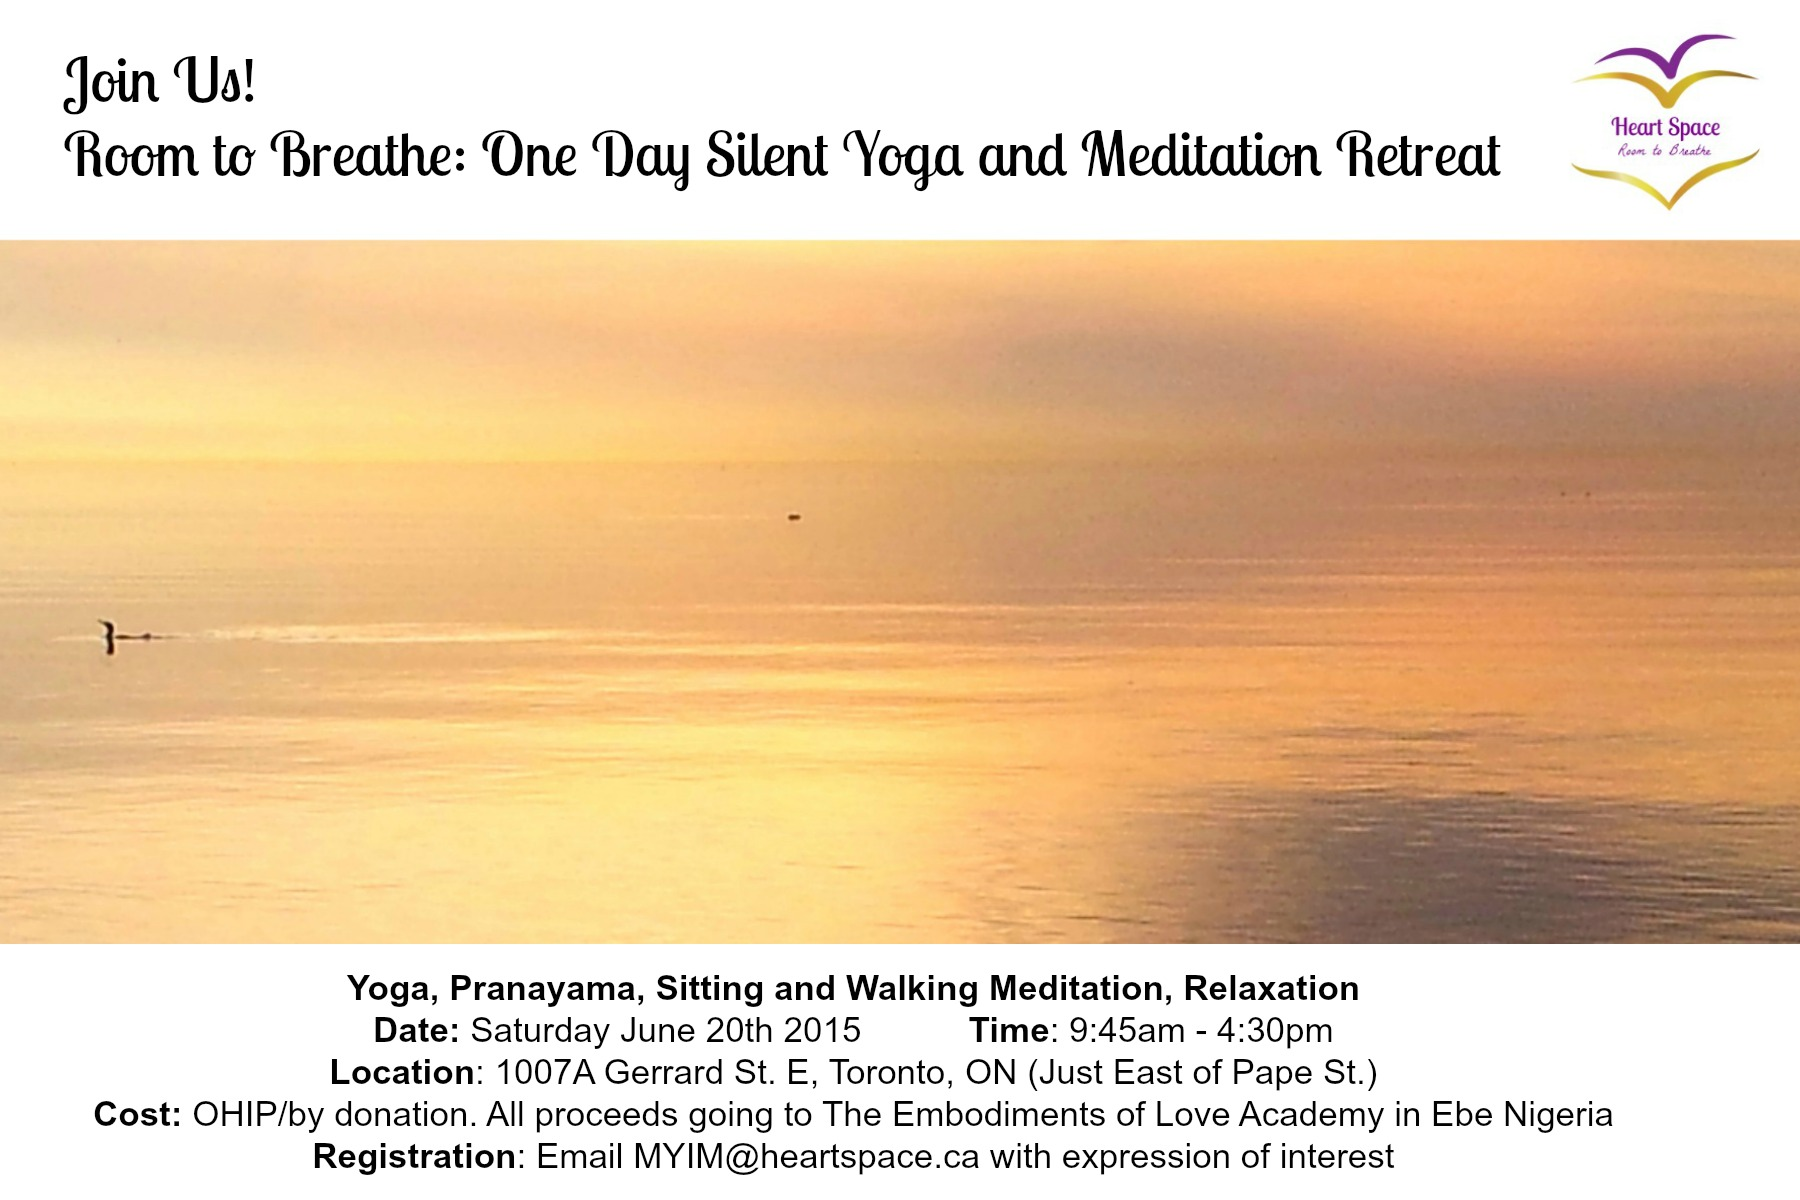 Yoga and Meditation Retreat in Toronto: June 20th 2015!